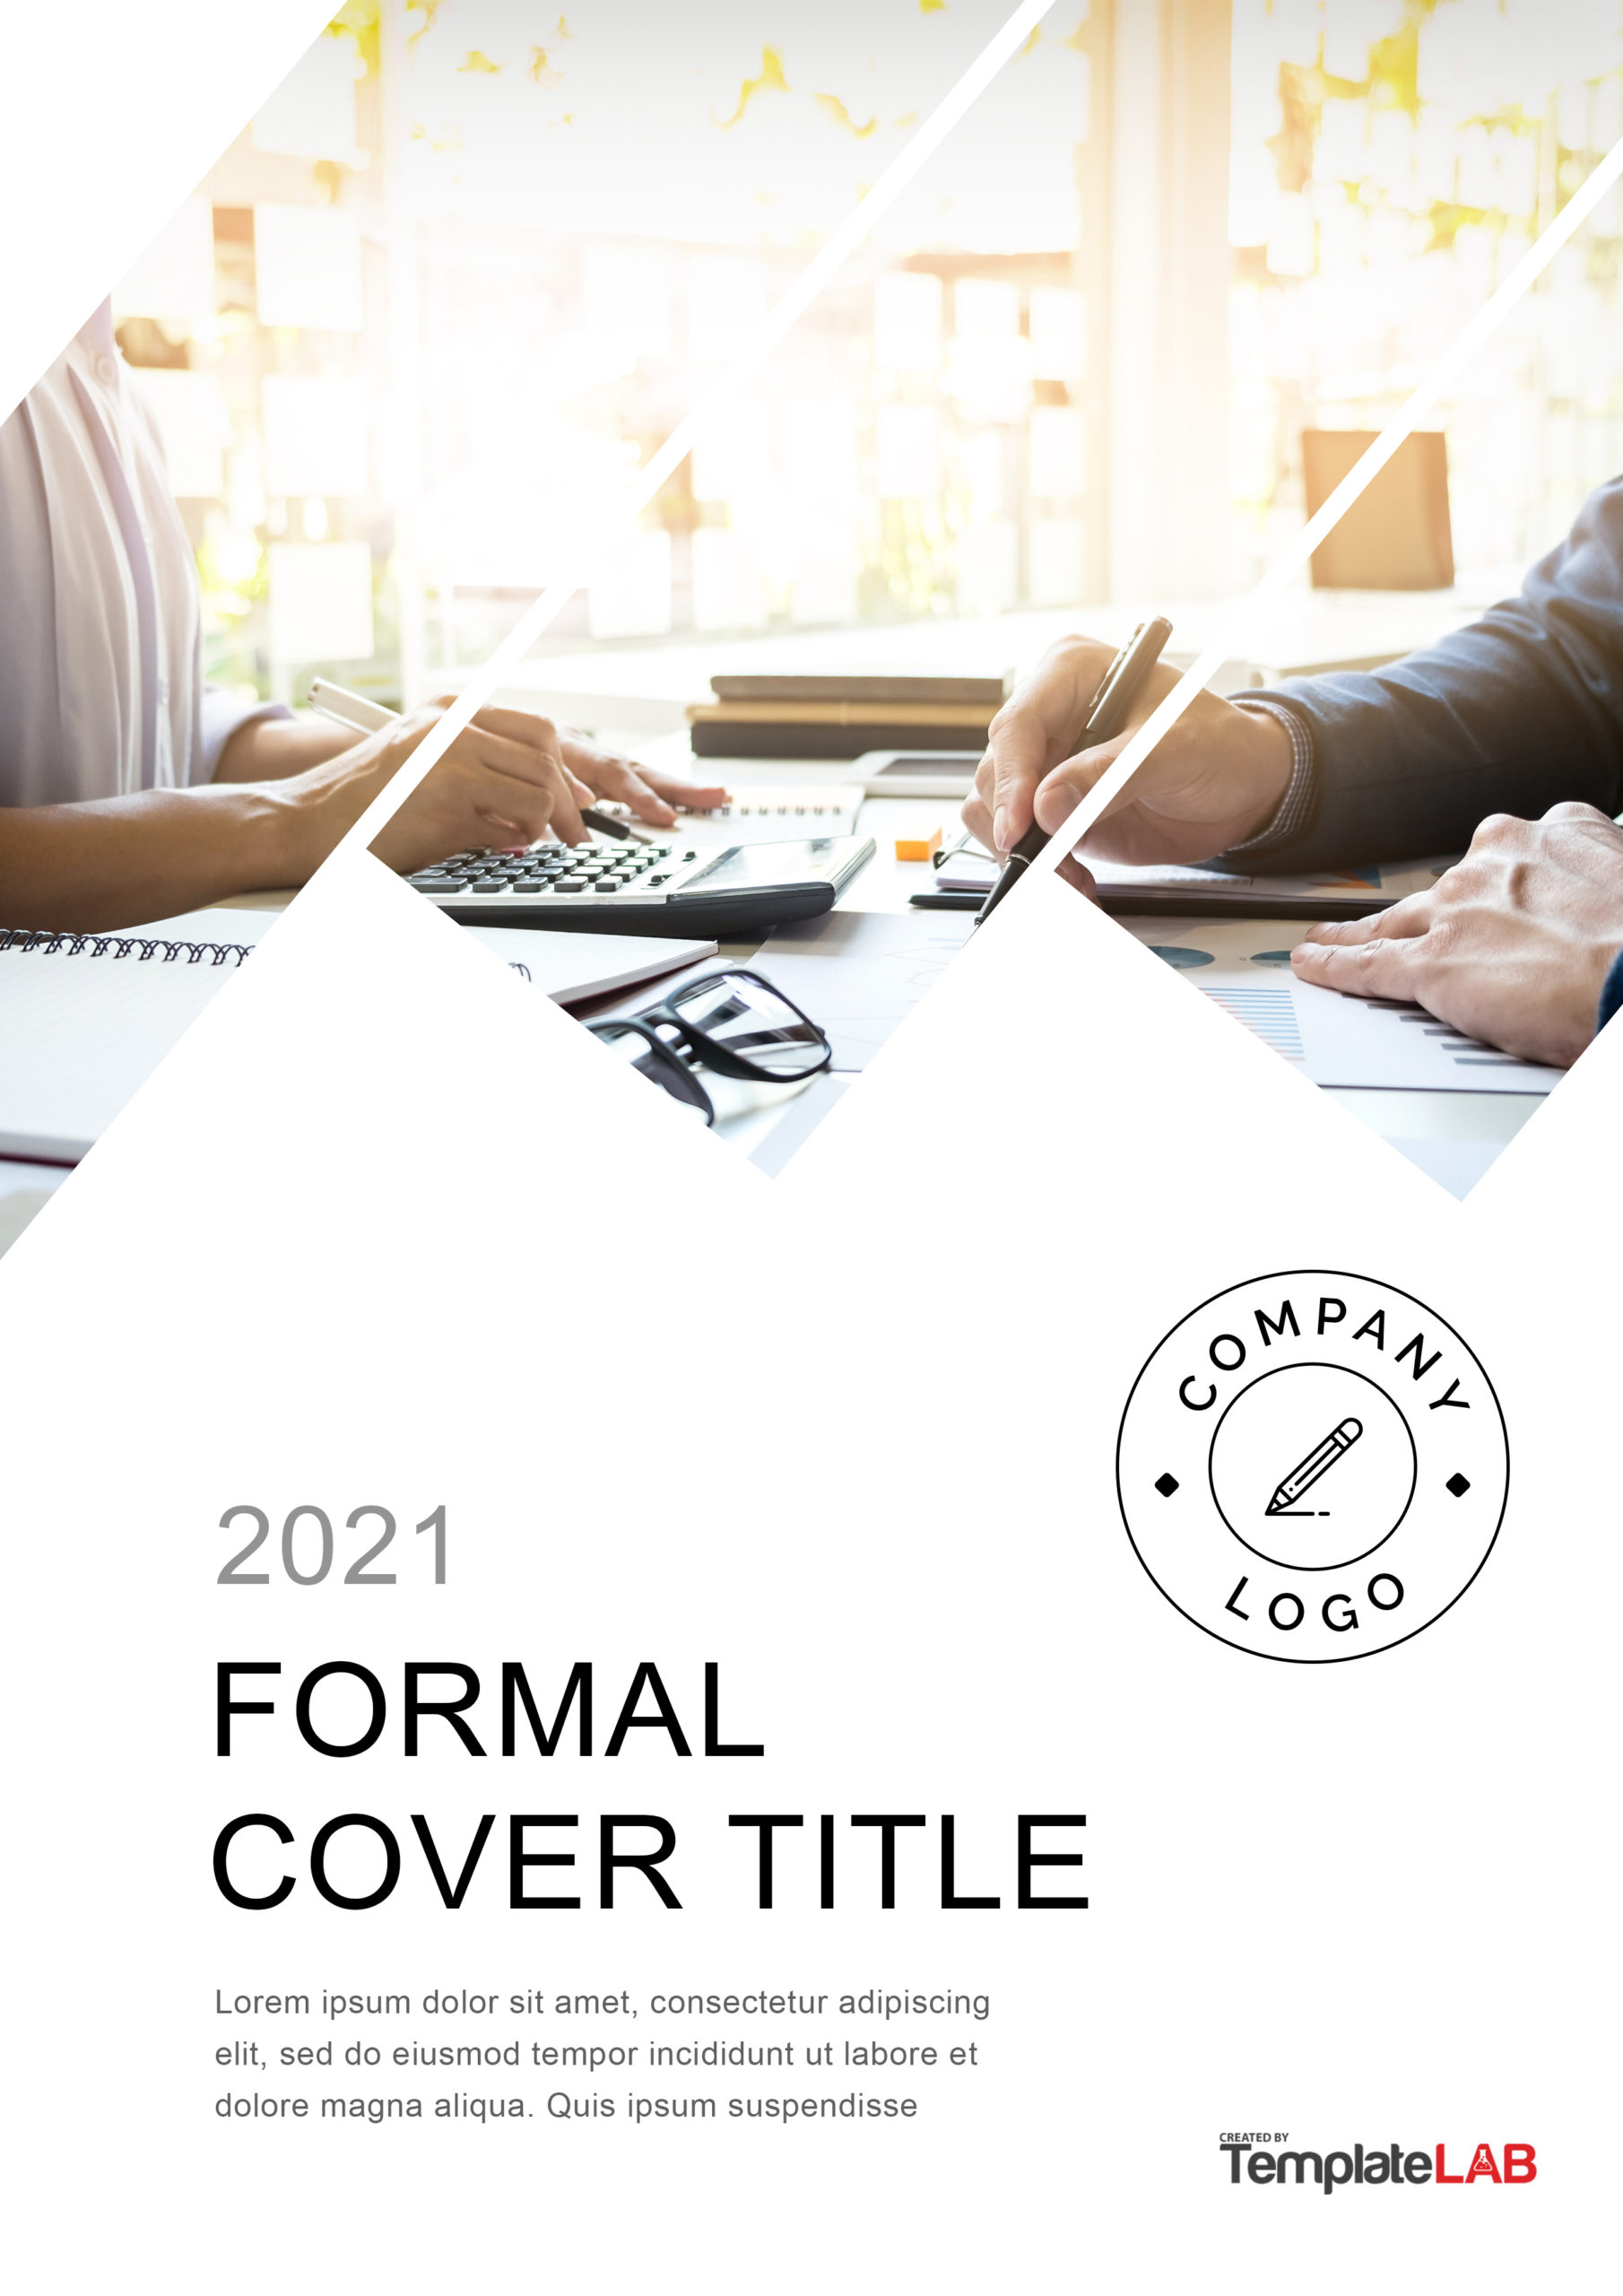 Free Formal Cover Page Template - TemplateLab.com